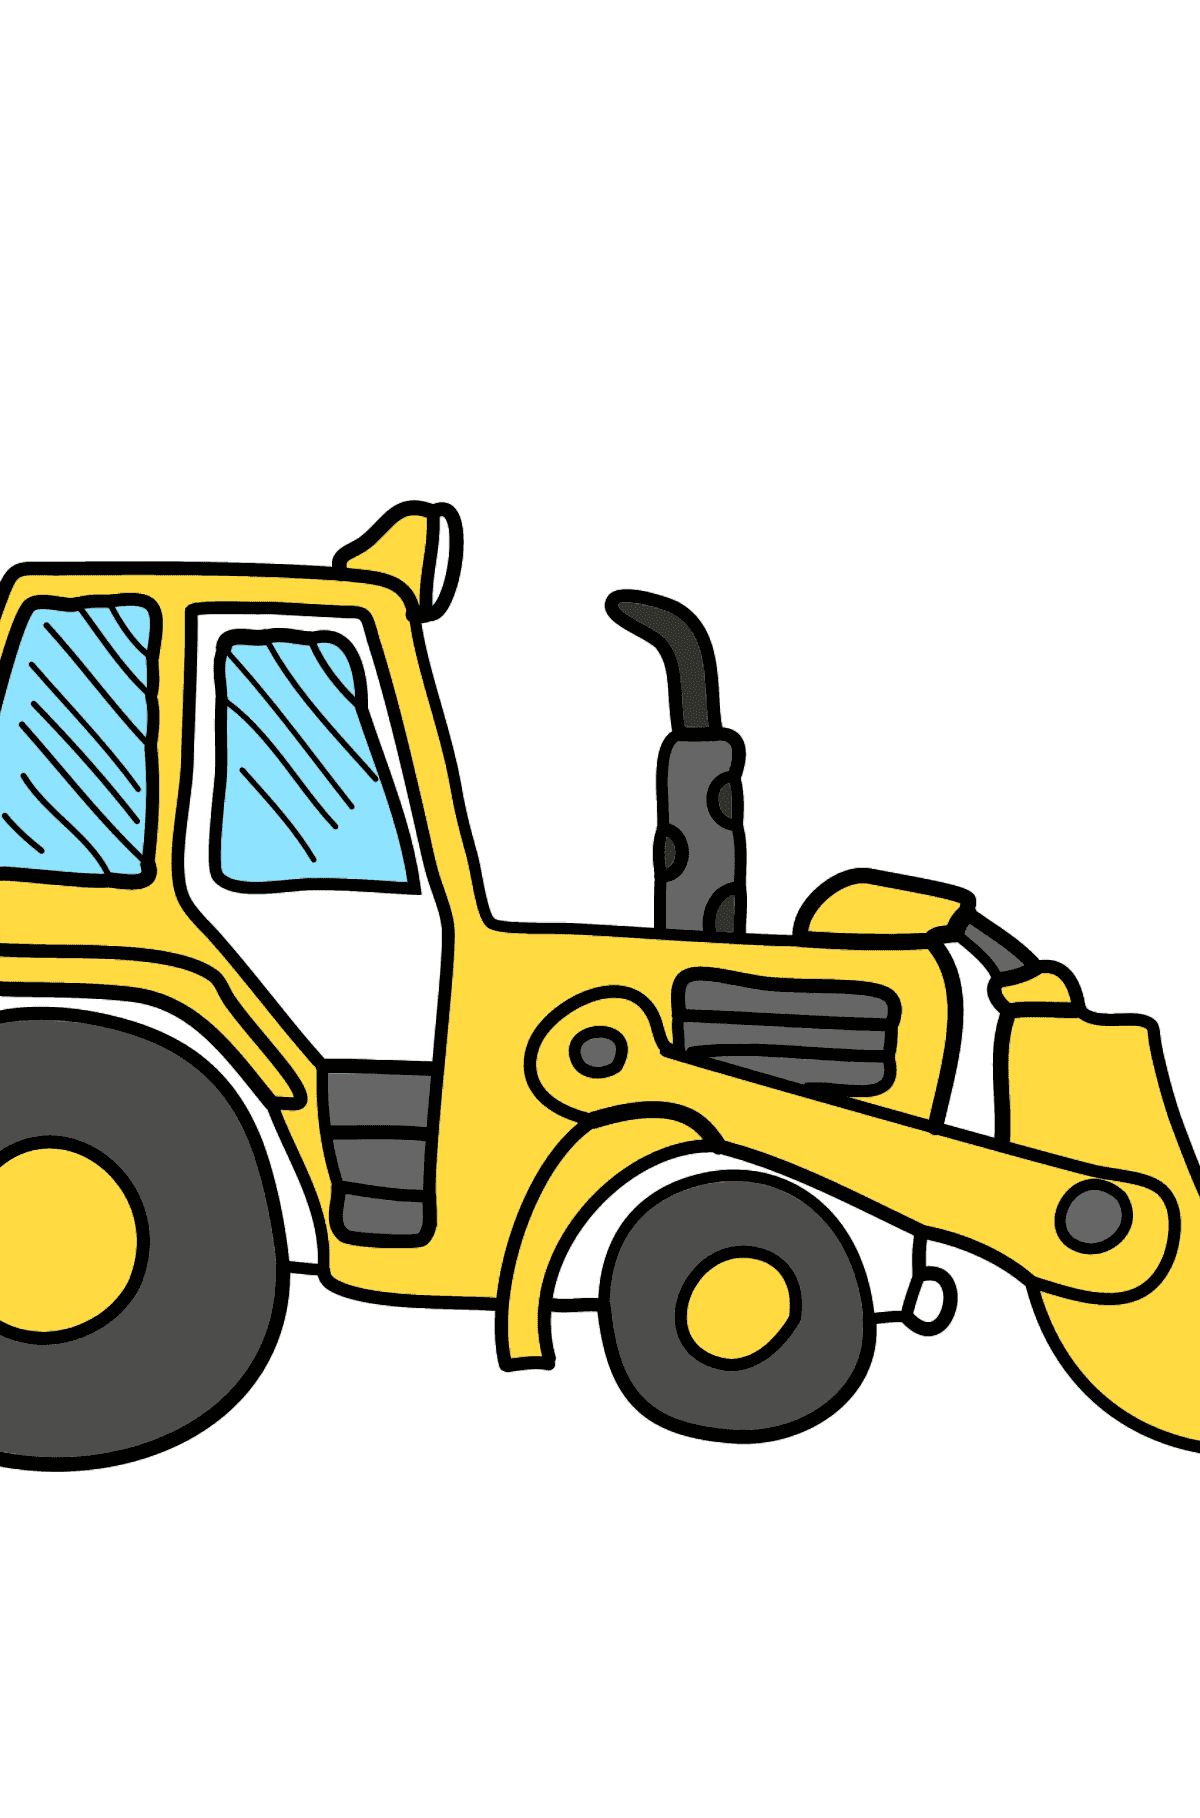 Coloring Page - A Yellow Tractor - Coloring Pages for Kids